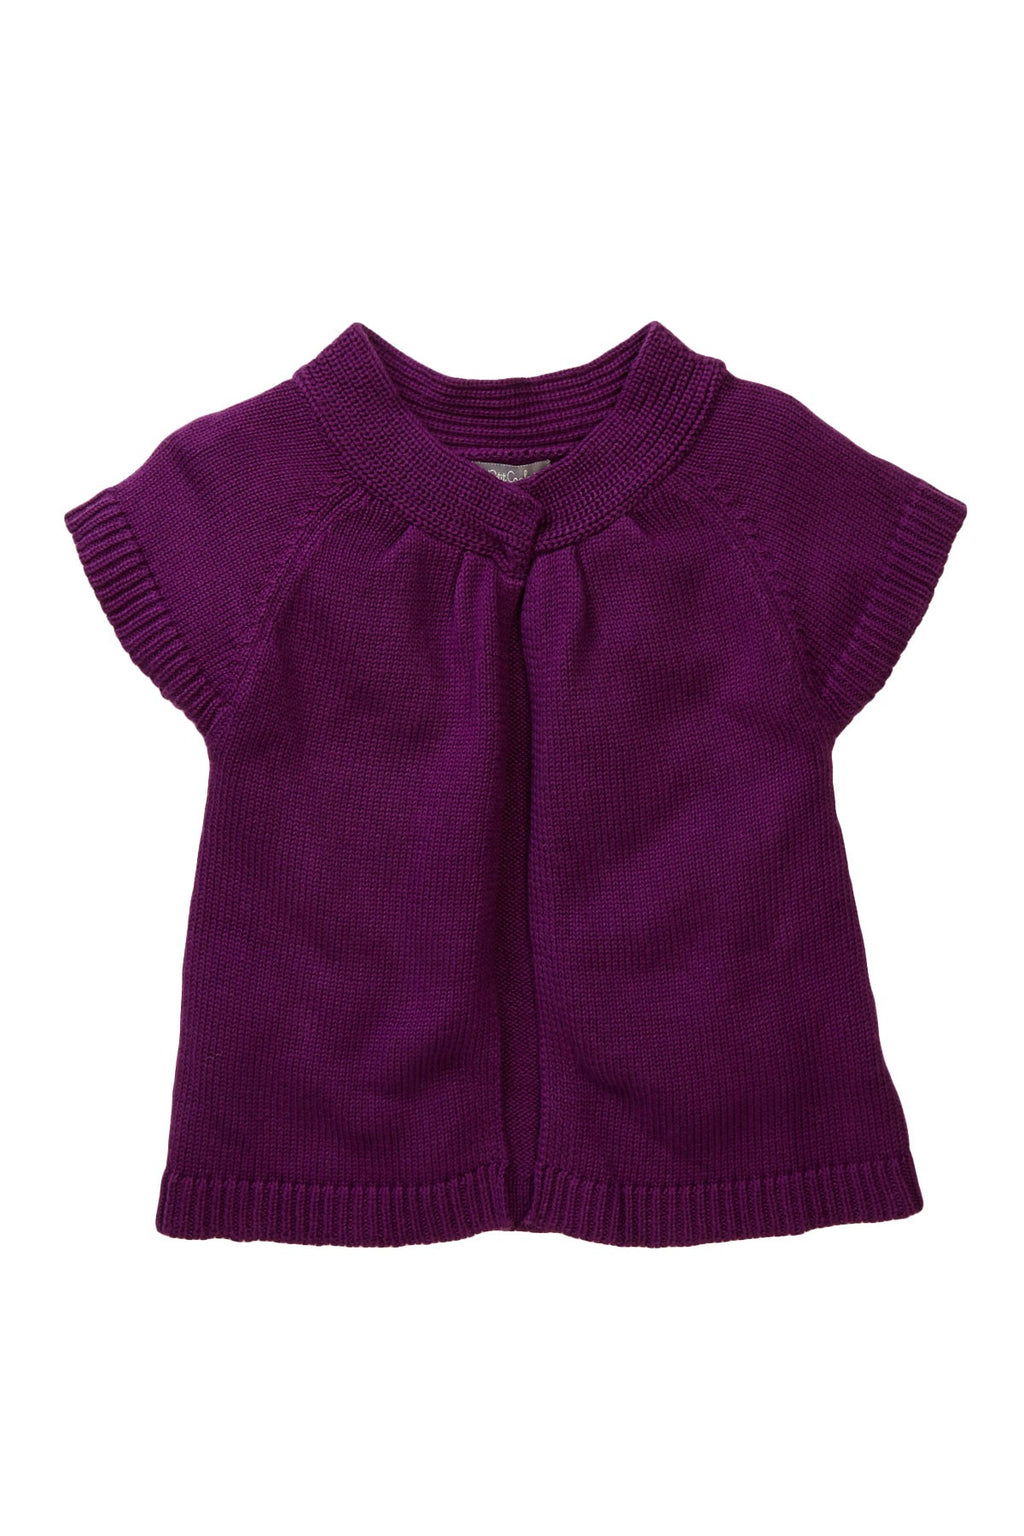 Purple Short-Sleeve Cardigan